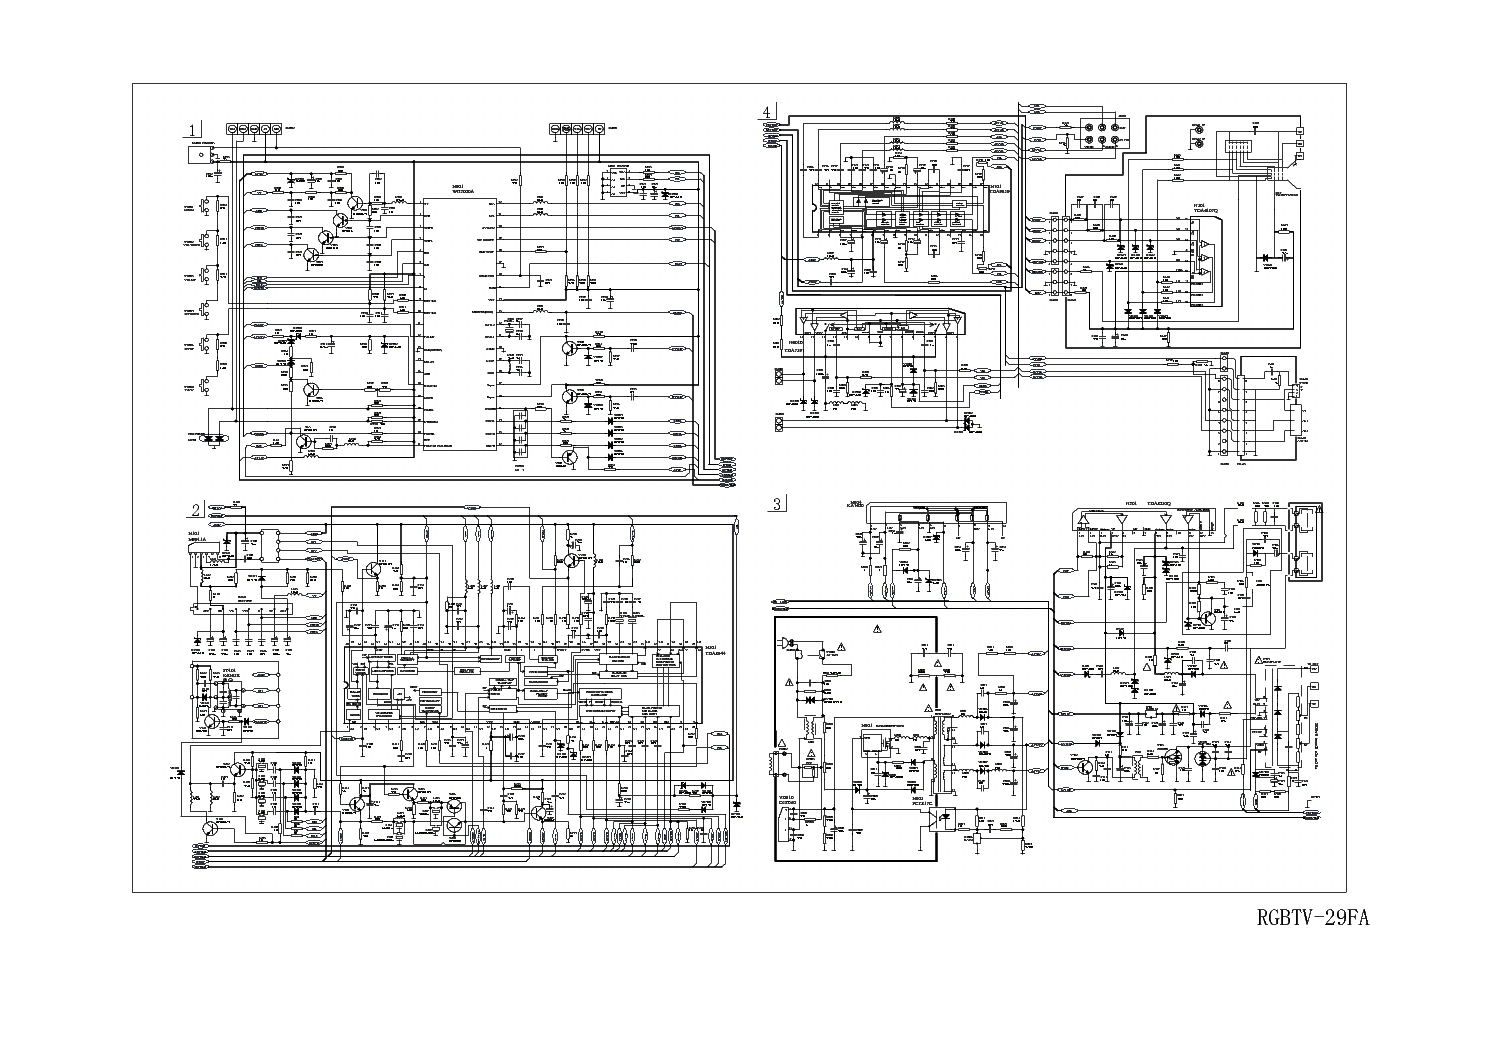 HAIER TV-29FA CIRCUIT DIAGRAM service manual (1st page)